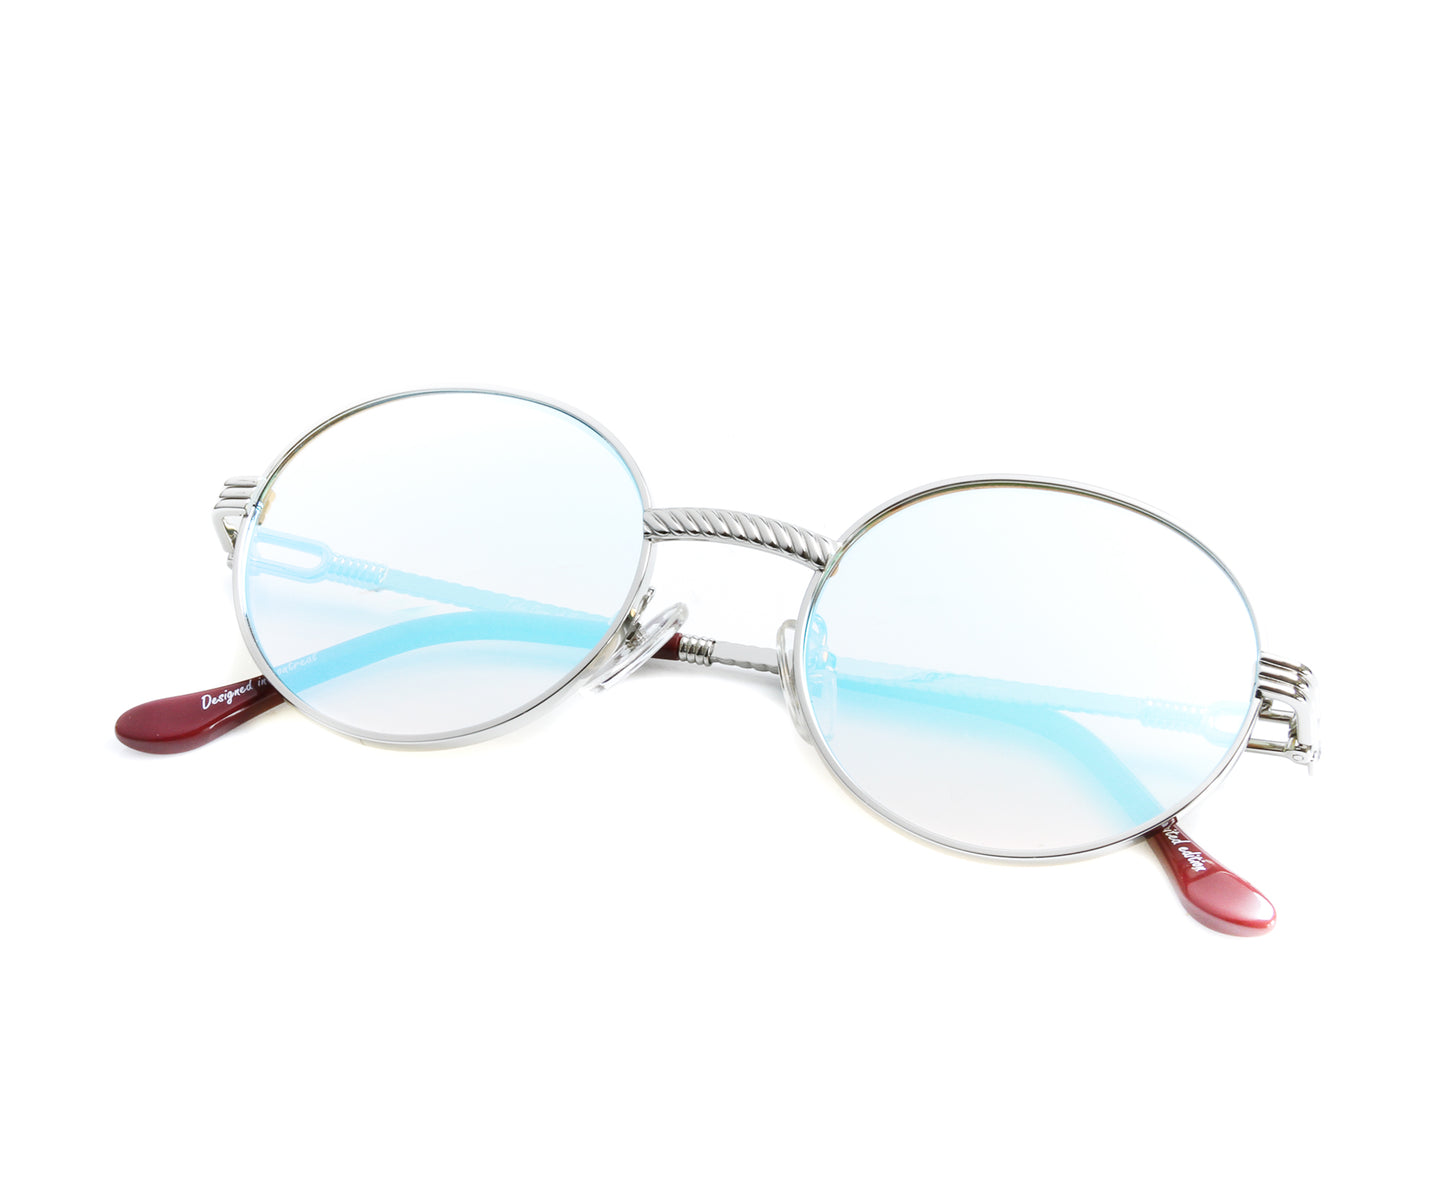 VF 508 18KT White Gold (Candy Green), VF by Vintage Frames , glasses frames, eyeglasses online, eyeglass frames, mens glasses, womens glasses, buy glasses online, designer eyeglasses, vintage sunglasses, retro sunglasses, vintage glasses, sunglass, eyeglass, glasses, lens, vintage frames company, vf